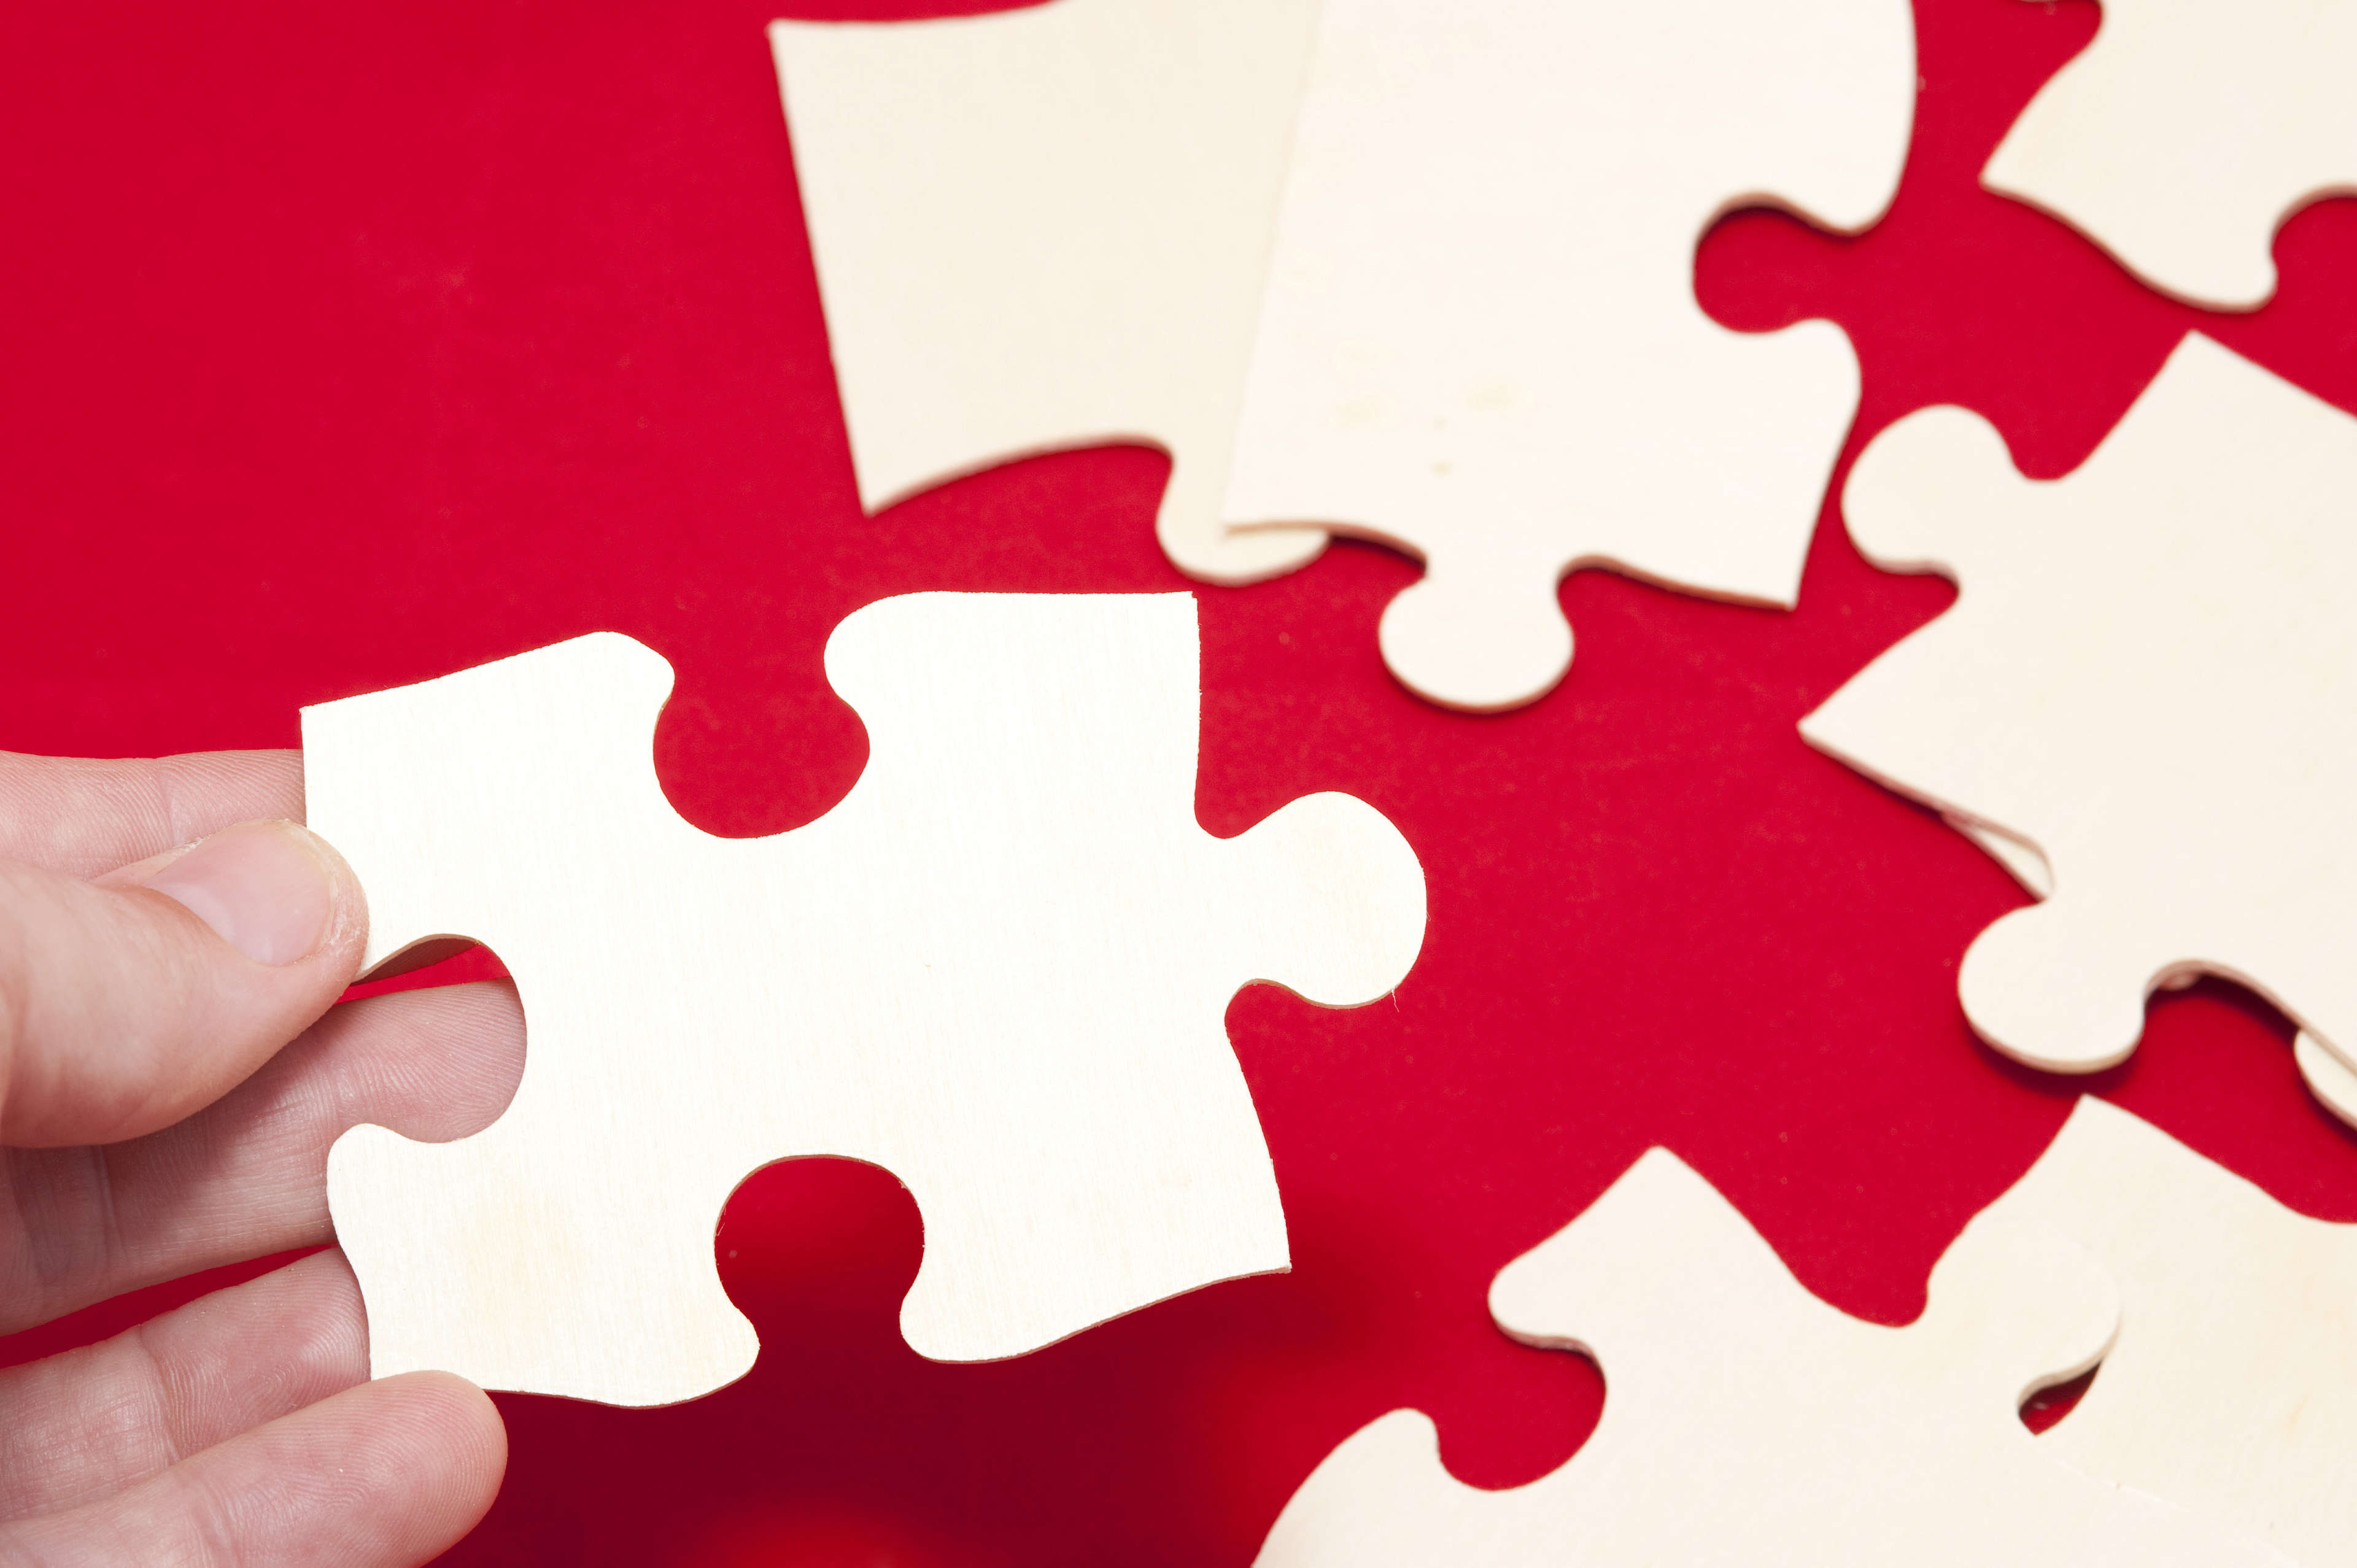 Close Up of Hand Assembling Blank Puzzle Pieces on Red Surface, Business Teamwork Concept Image